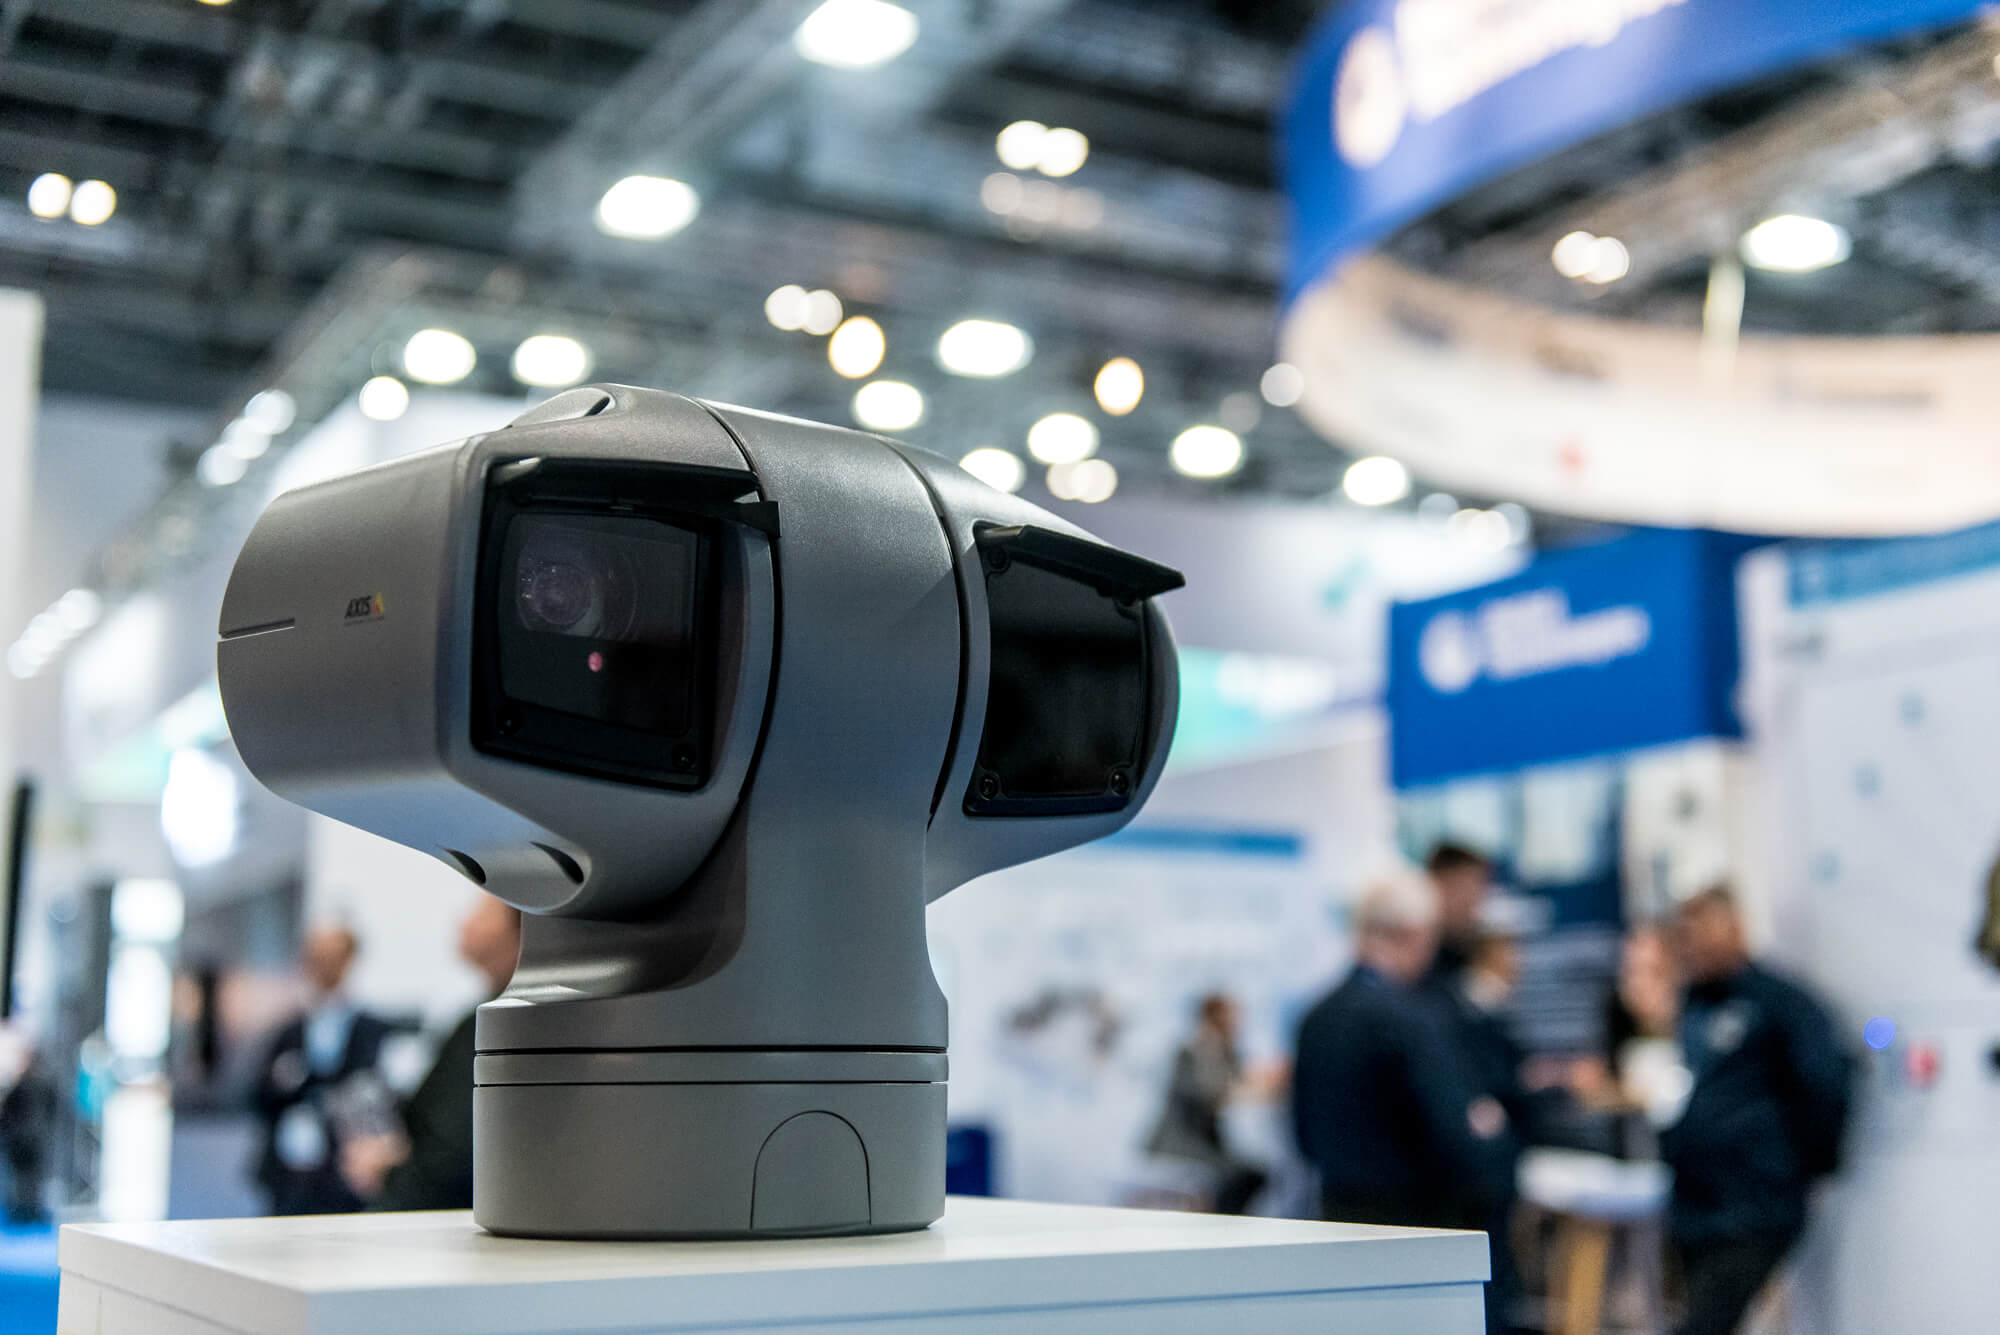 A security camera at IFSEC 2019